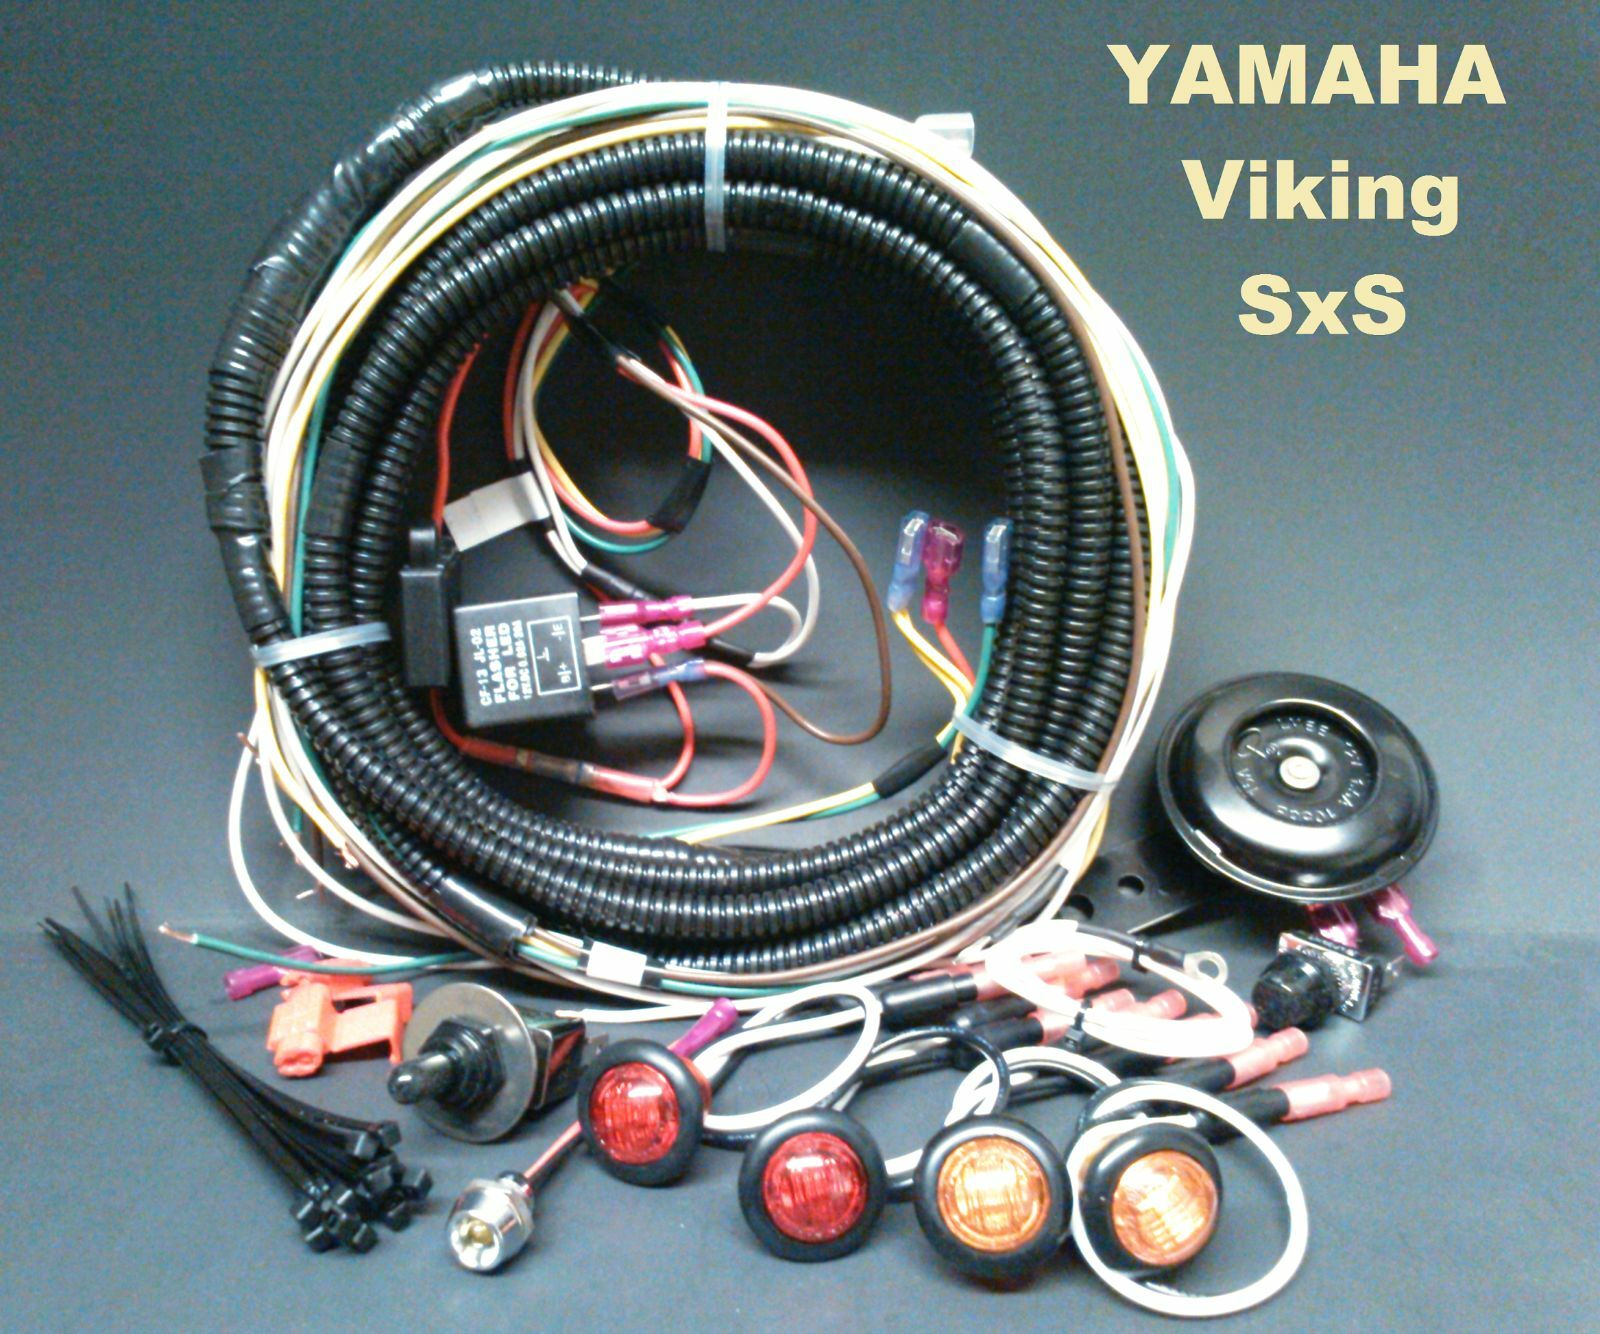 Key Switch Wiring Diagram Yamaha Viking Trusted Diagrams Turn Signal Horn Kit Sealed Loomed Harness Outboard